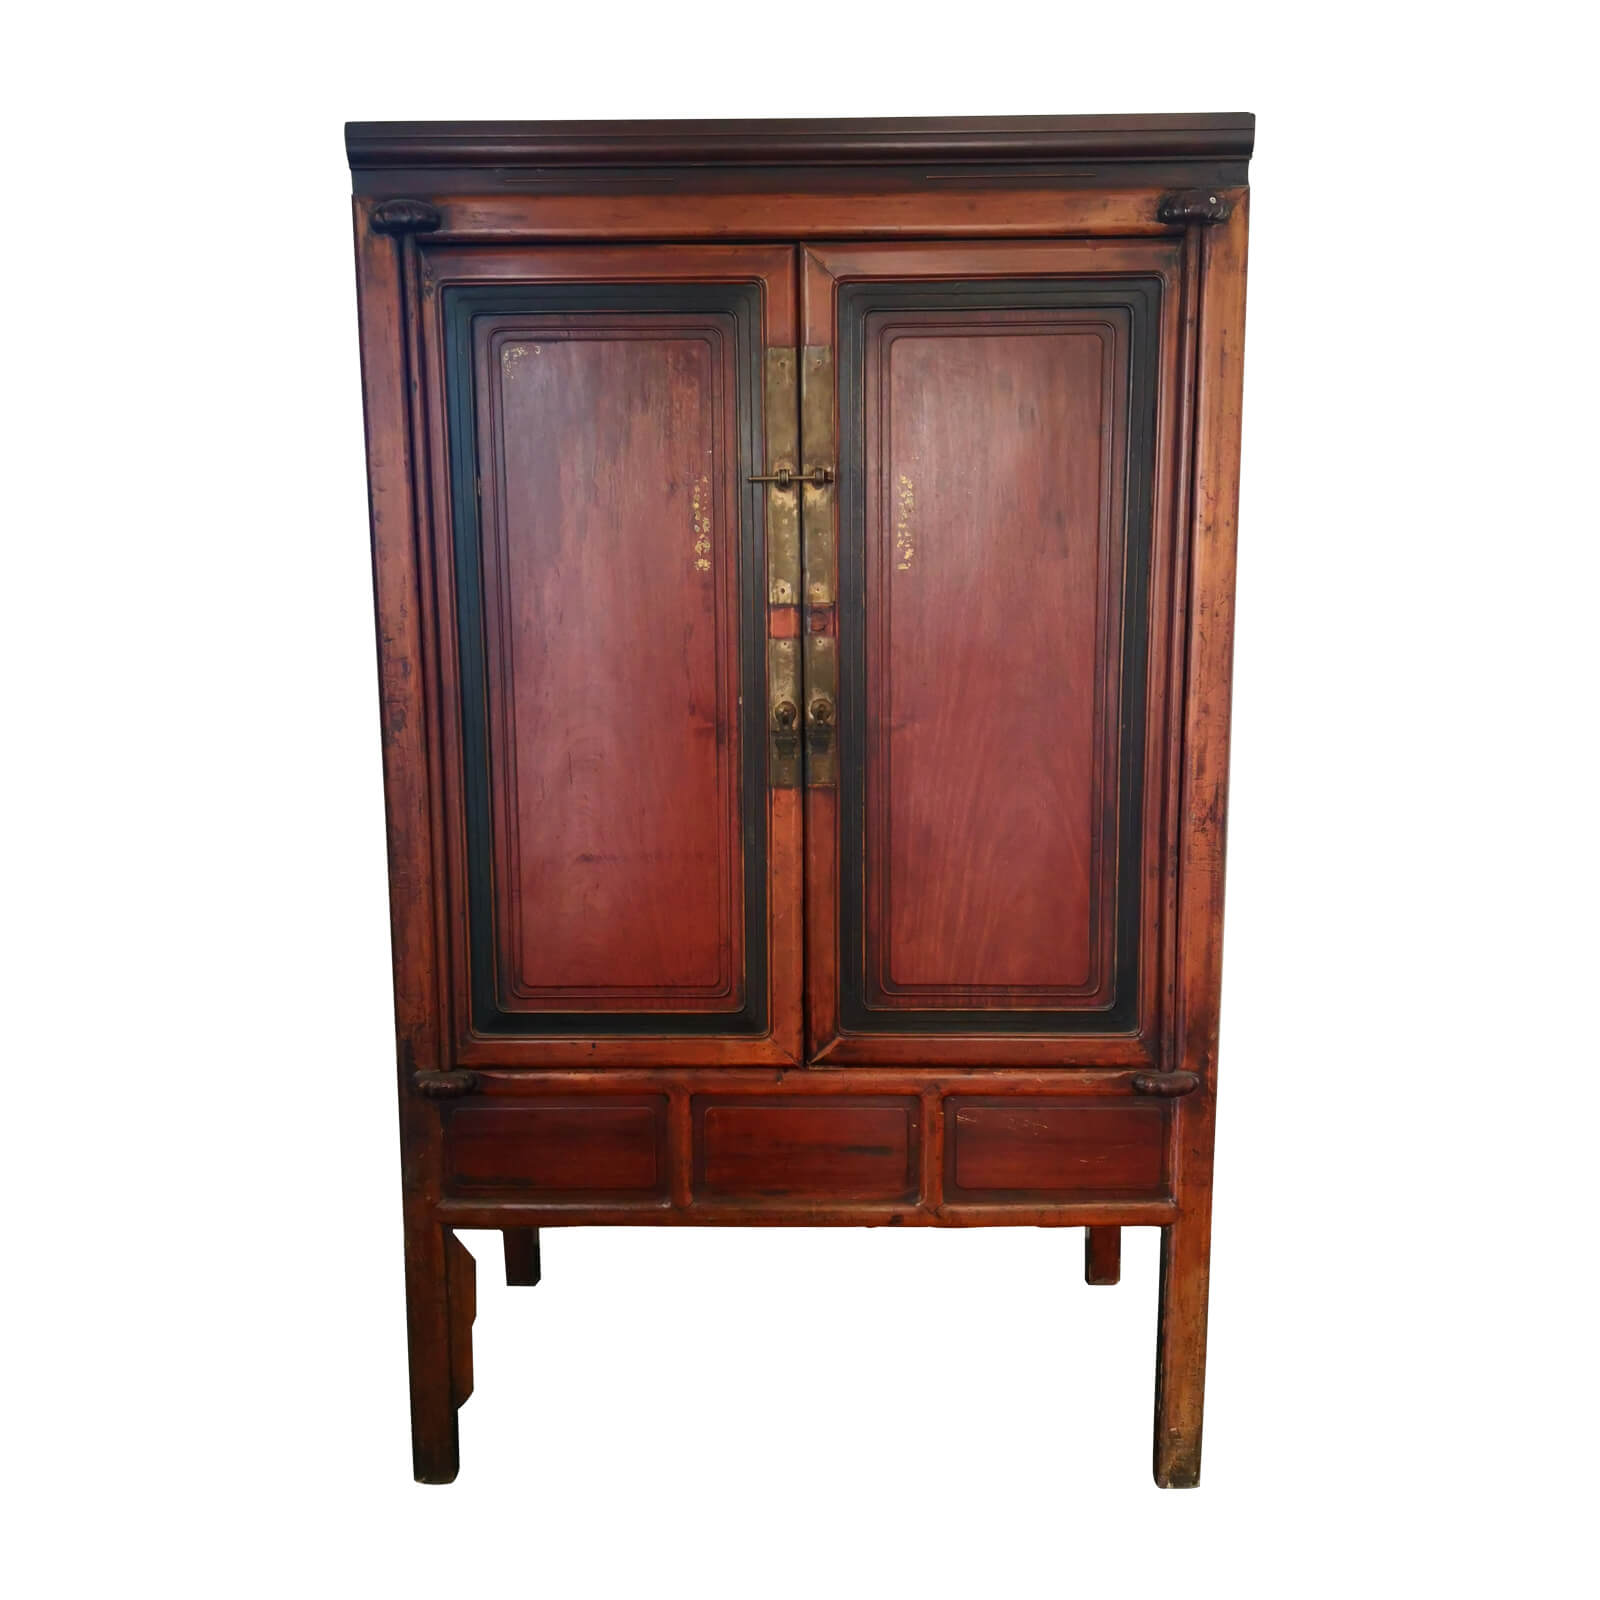 Two Design Lovers Asian cabinet